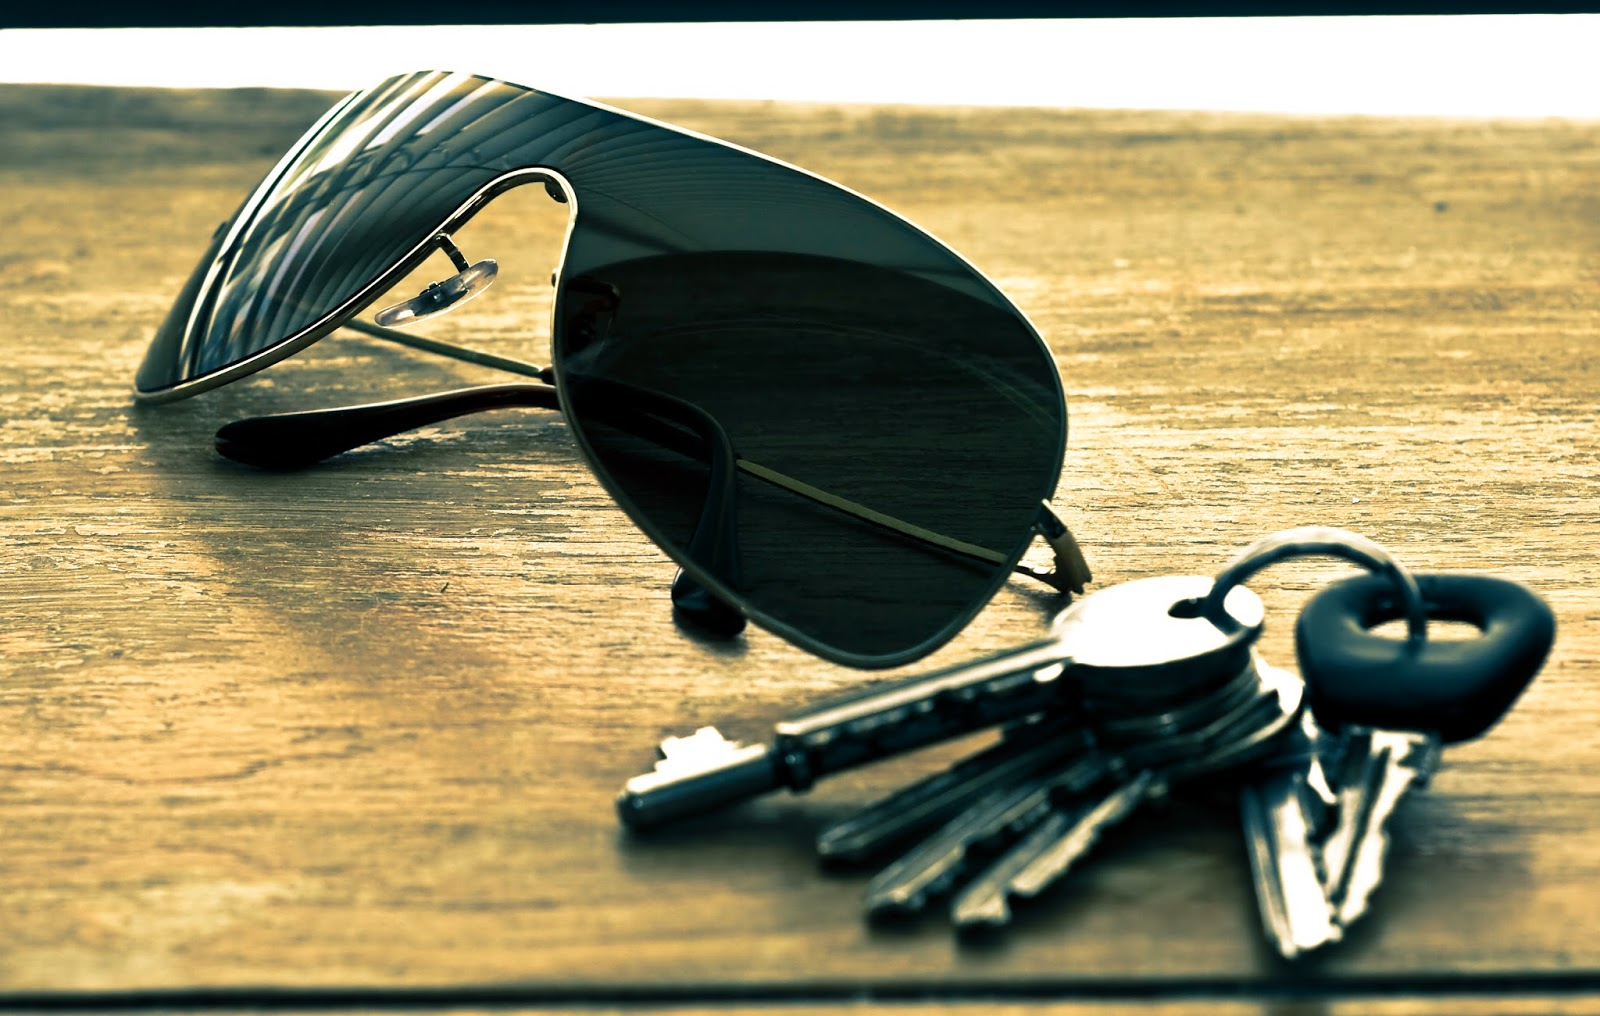 Sunglasses and keys on a table